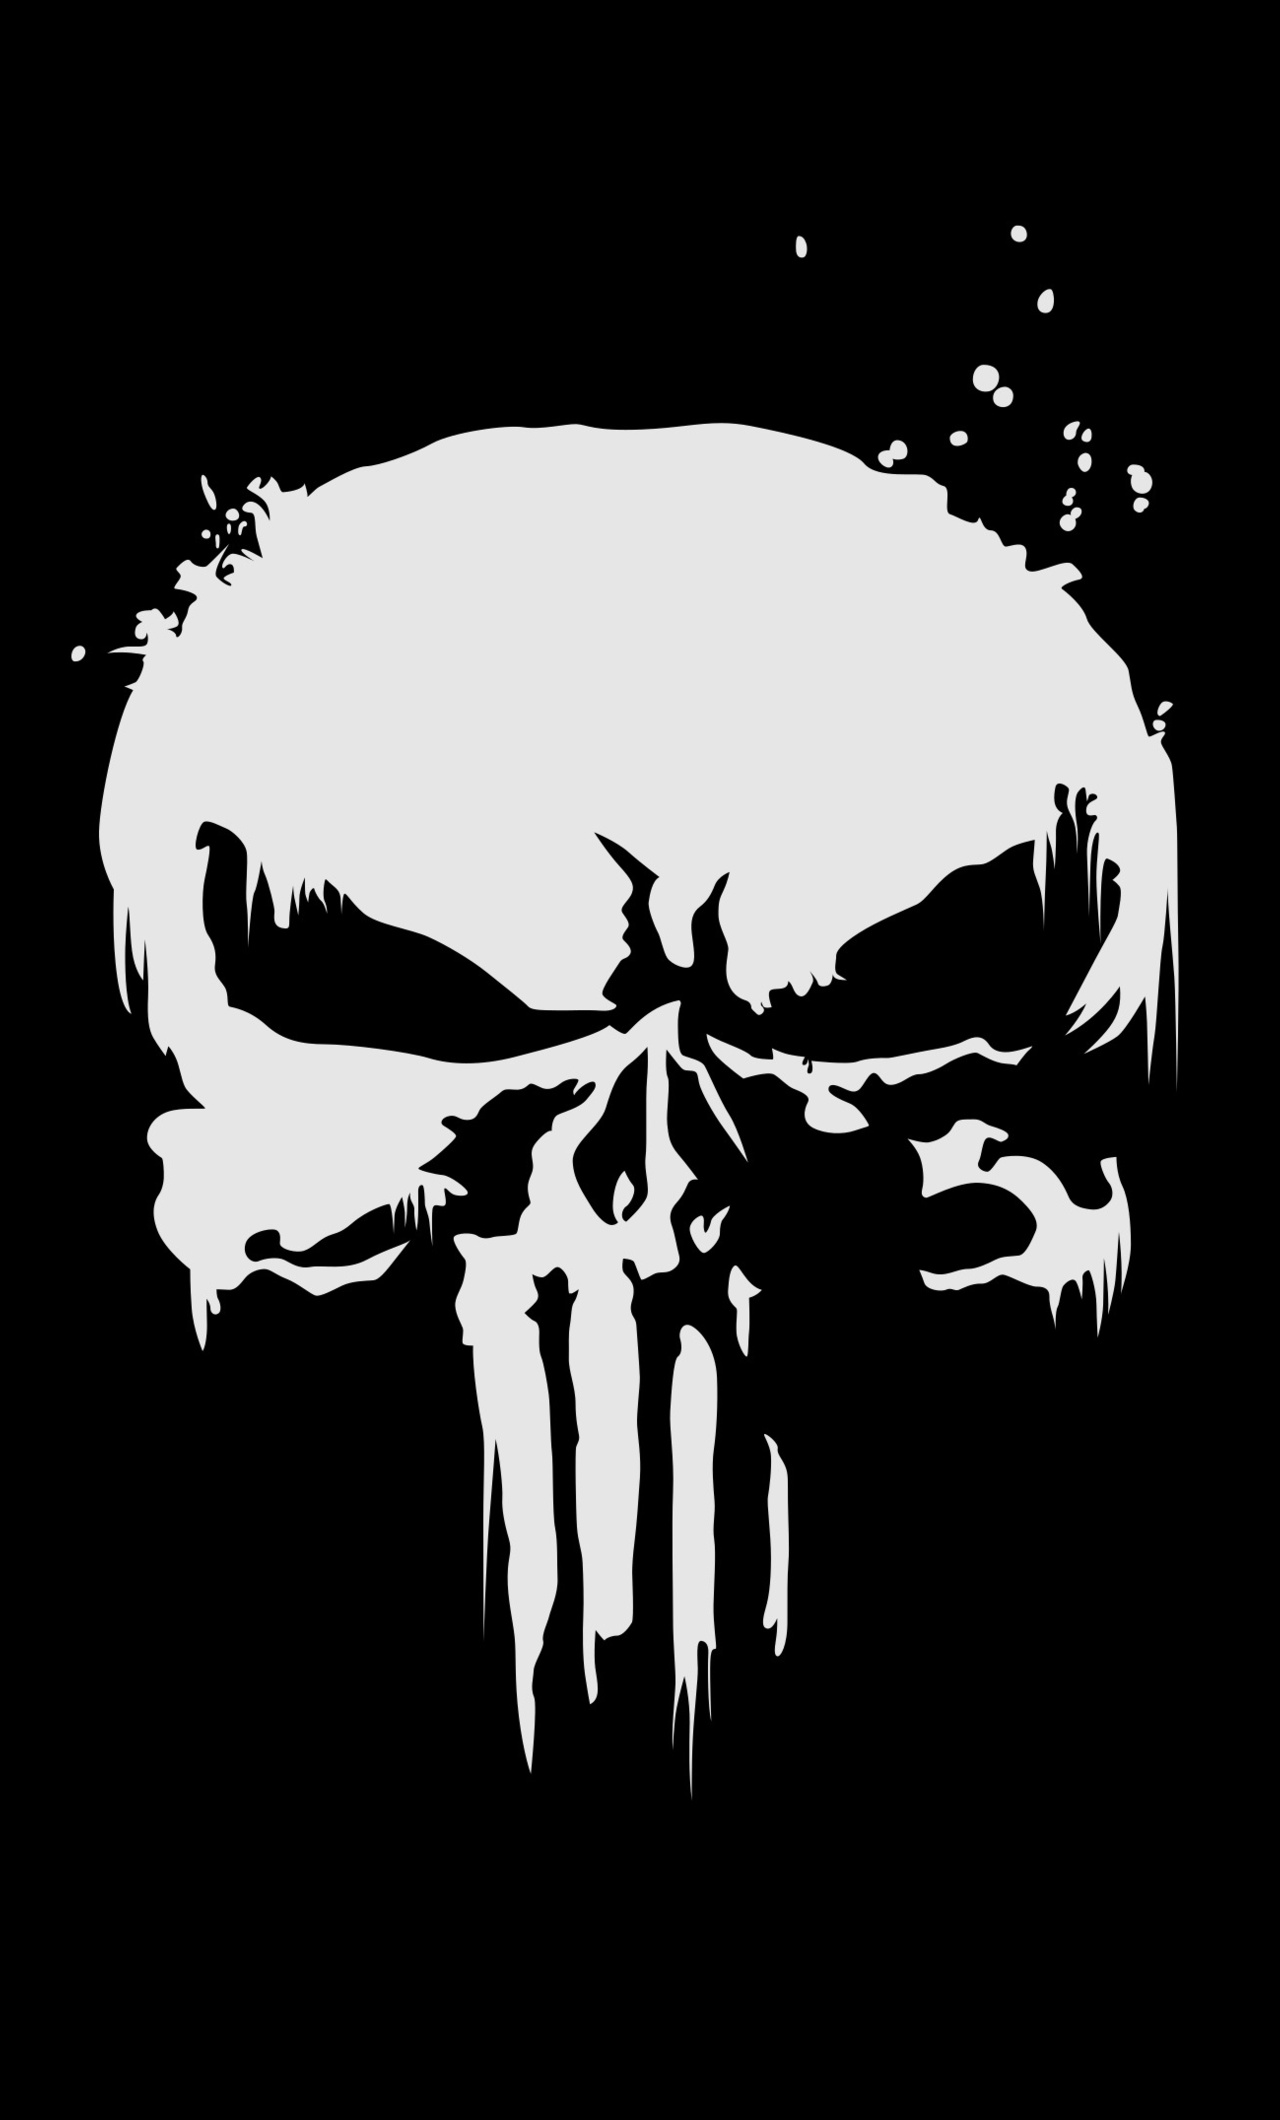 1280x2120 The Punisher Logo 4k Iphone 6 Hd 4k Wallpapers Images